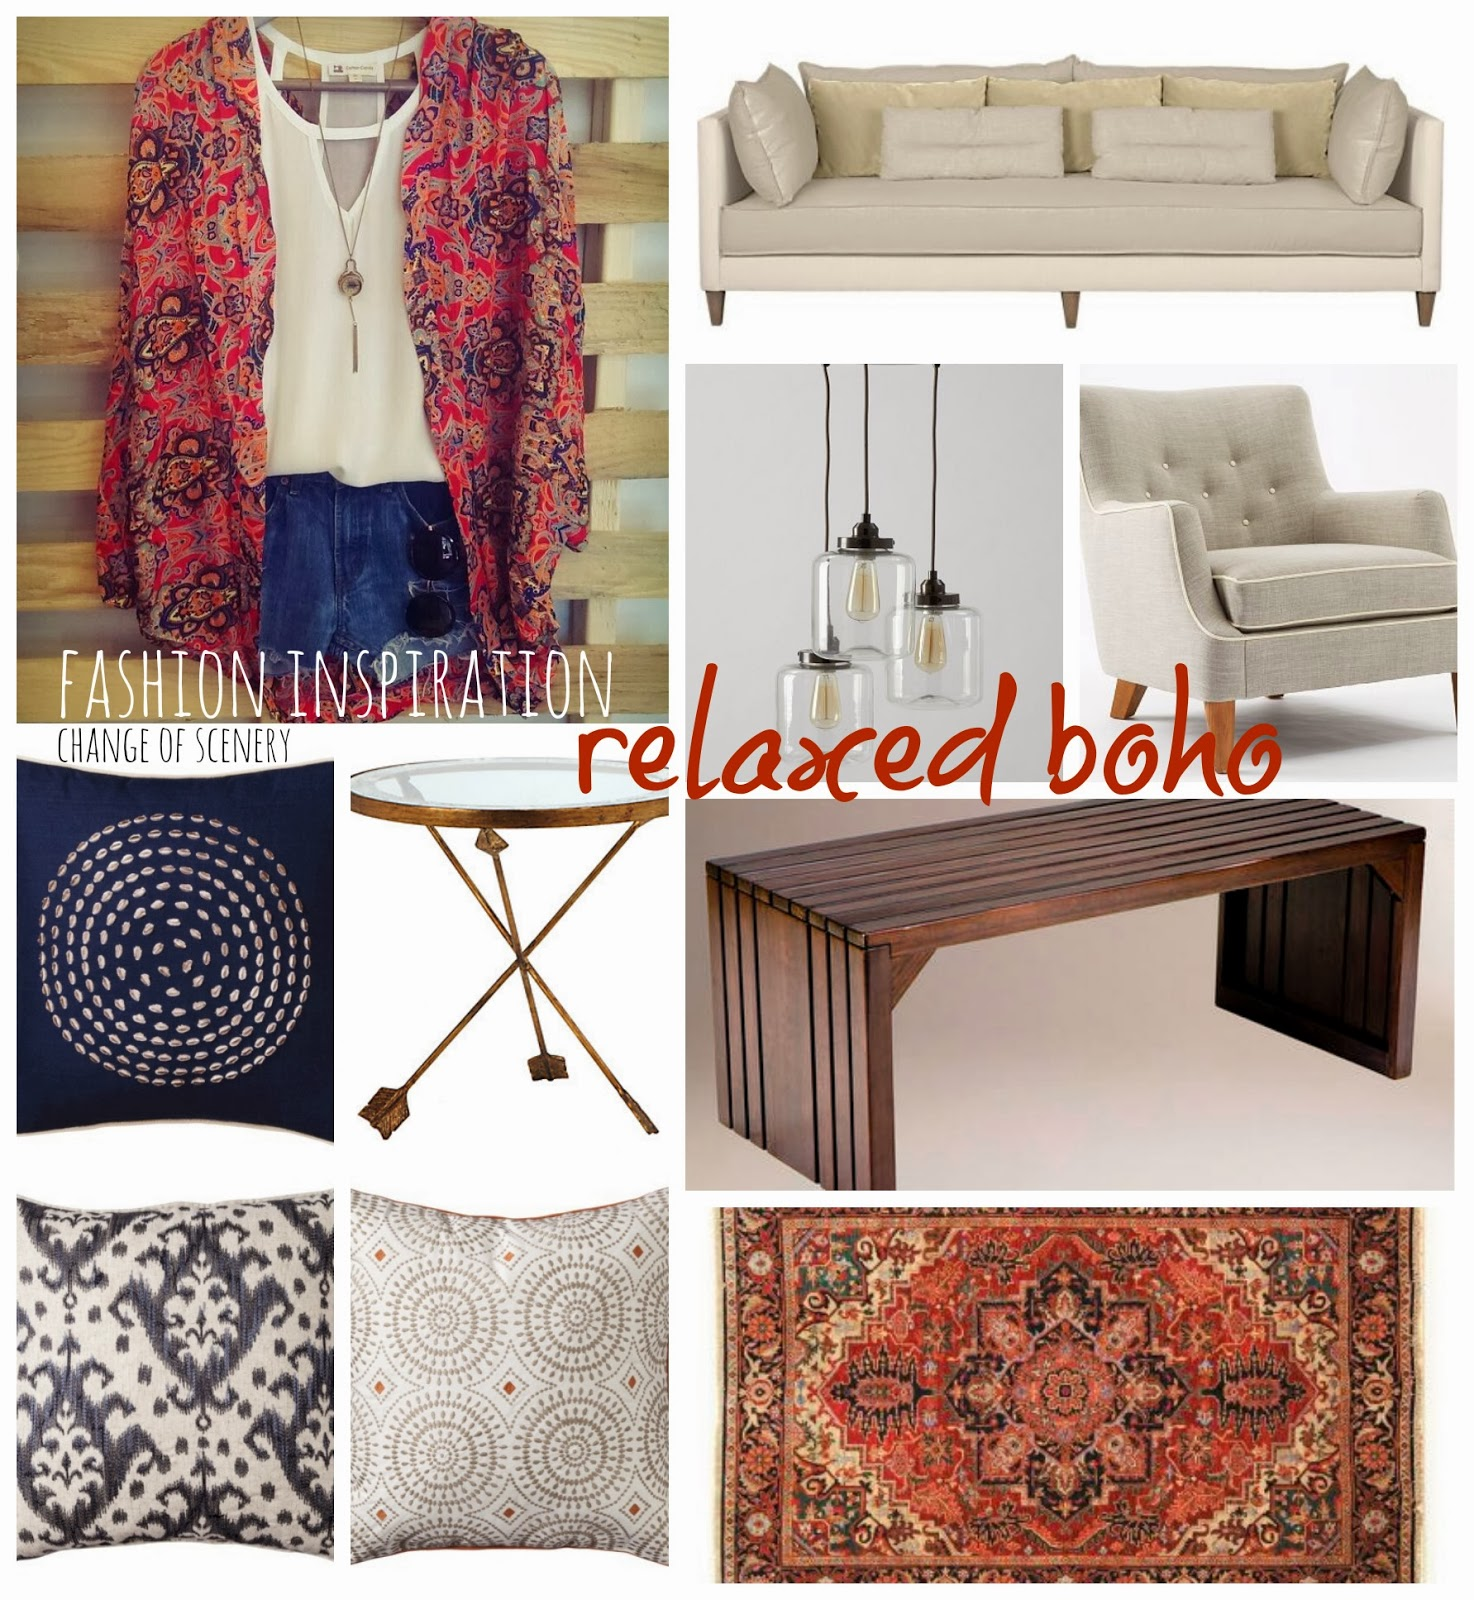 change of scenery fashion inspiration relaxed boho living room